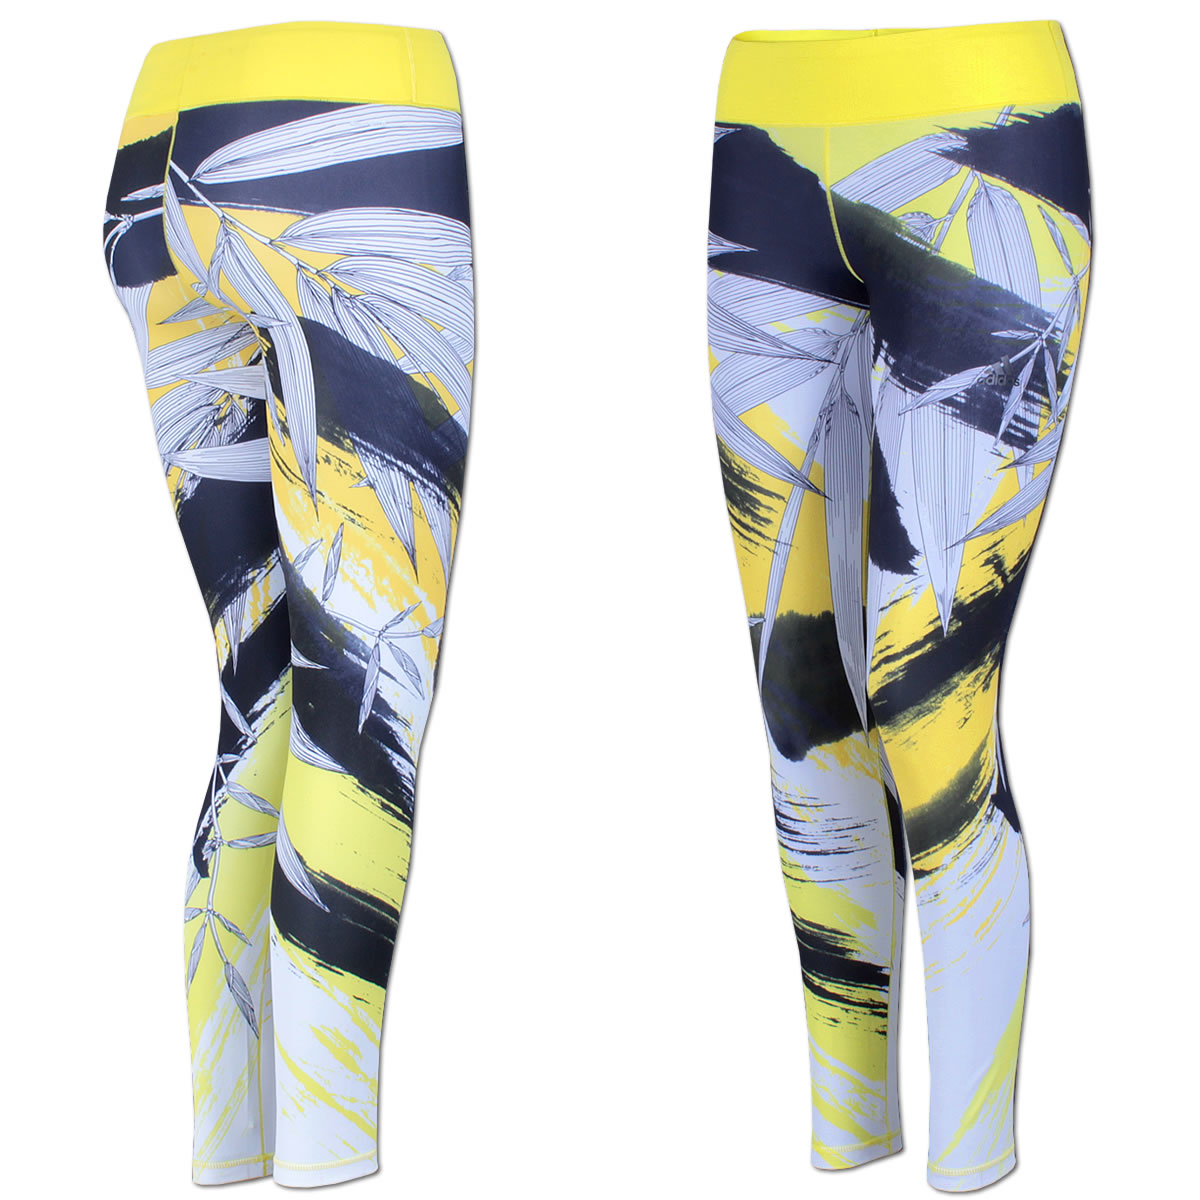 Details zu adidas Damen Miracle Sculpture Tight Hose Leggings Sporthose Fitnesshose Clima